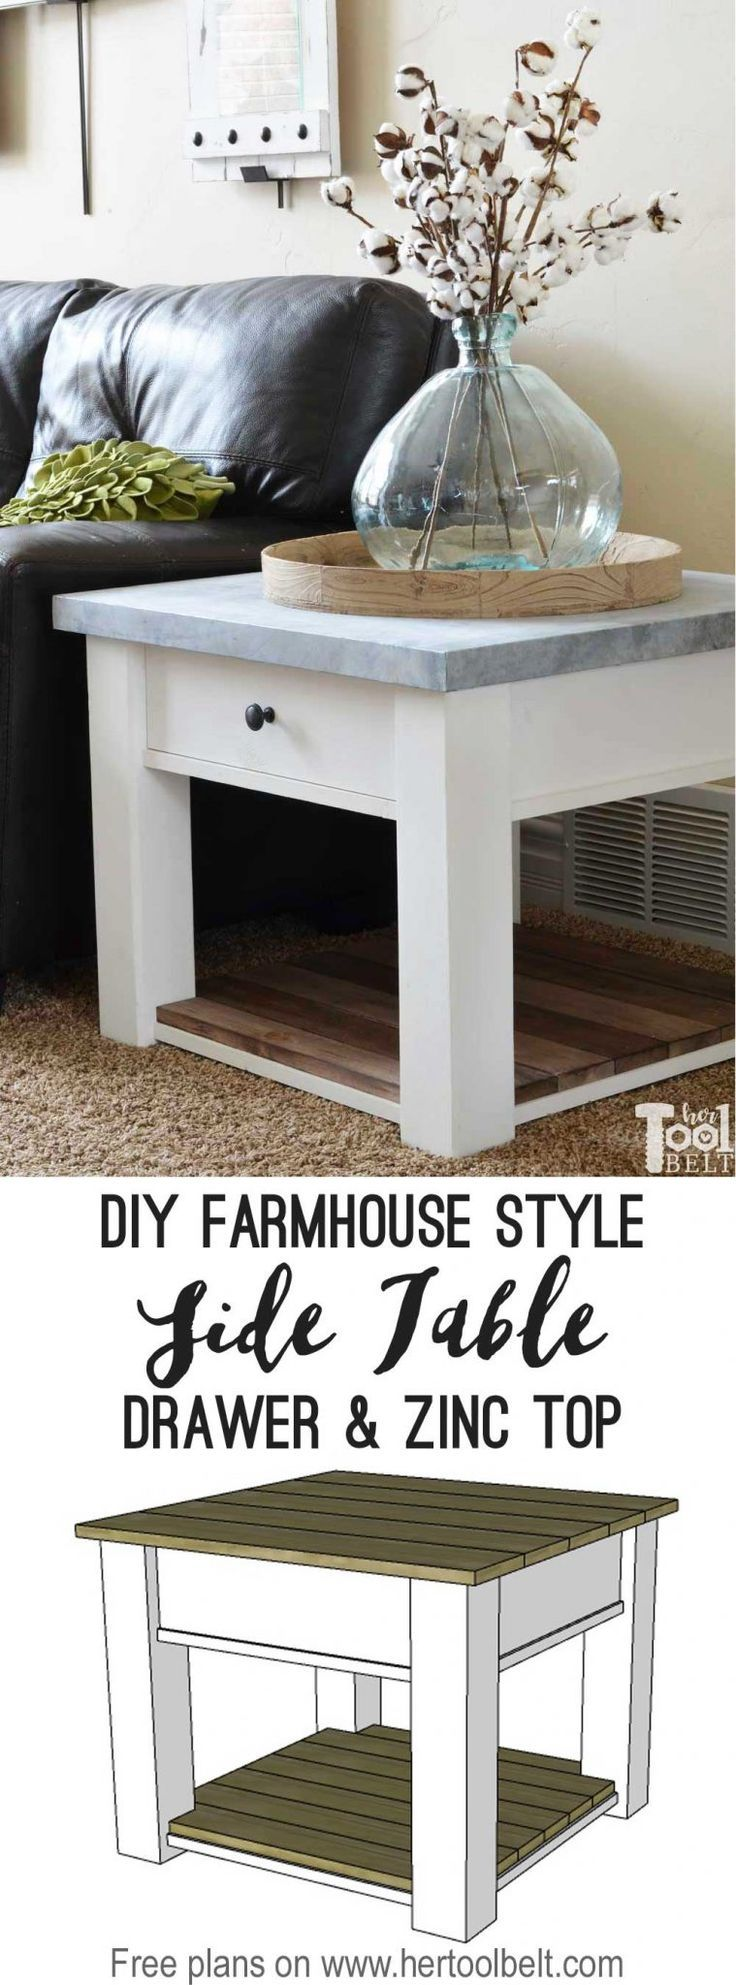 Diy farmhouse side table tutorial and free plans with